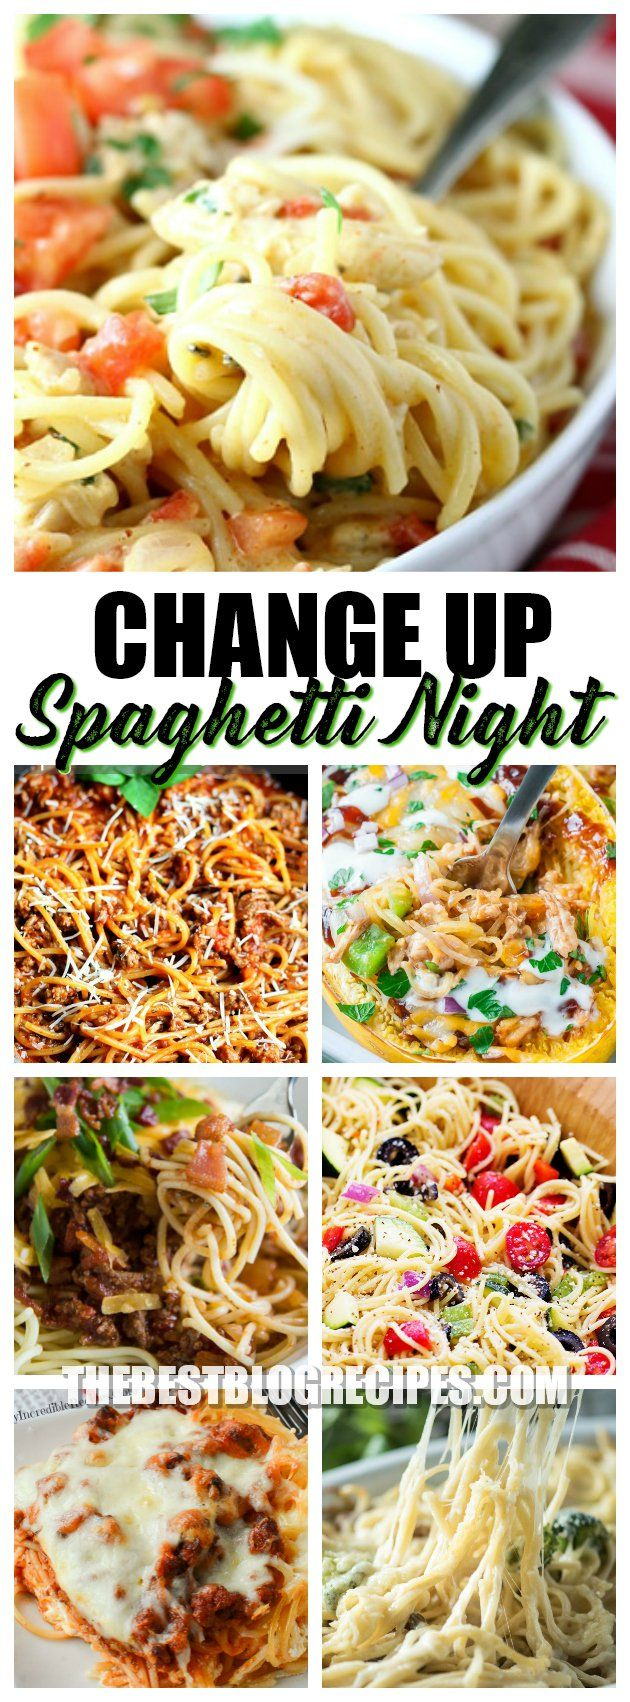 Delicious ways to CHANGE up your Spaghetti Dinner Routine so you don't make the same dinner over and over again. These recipes are easy to make and will have your family excited about Spaghetti Night again!  via @bestblogrecipes